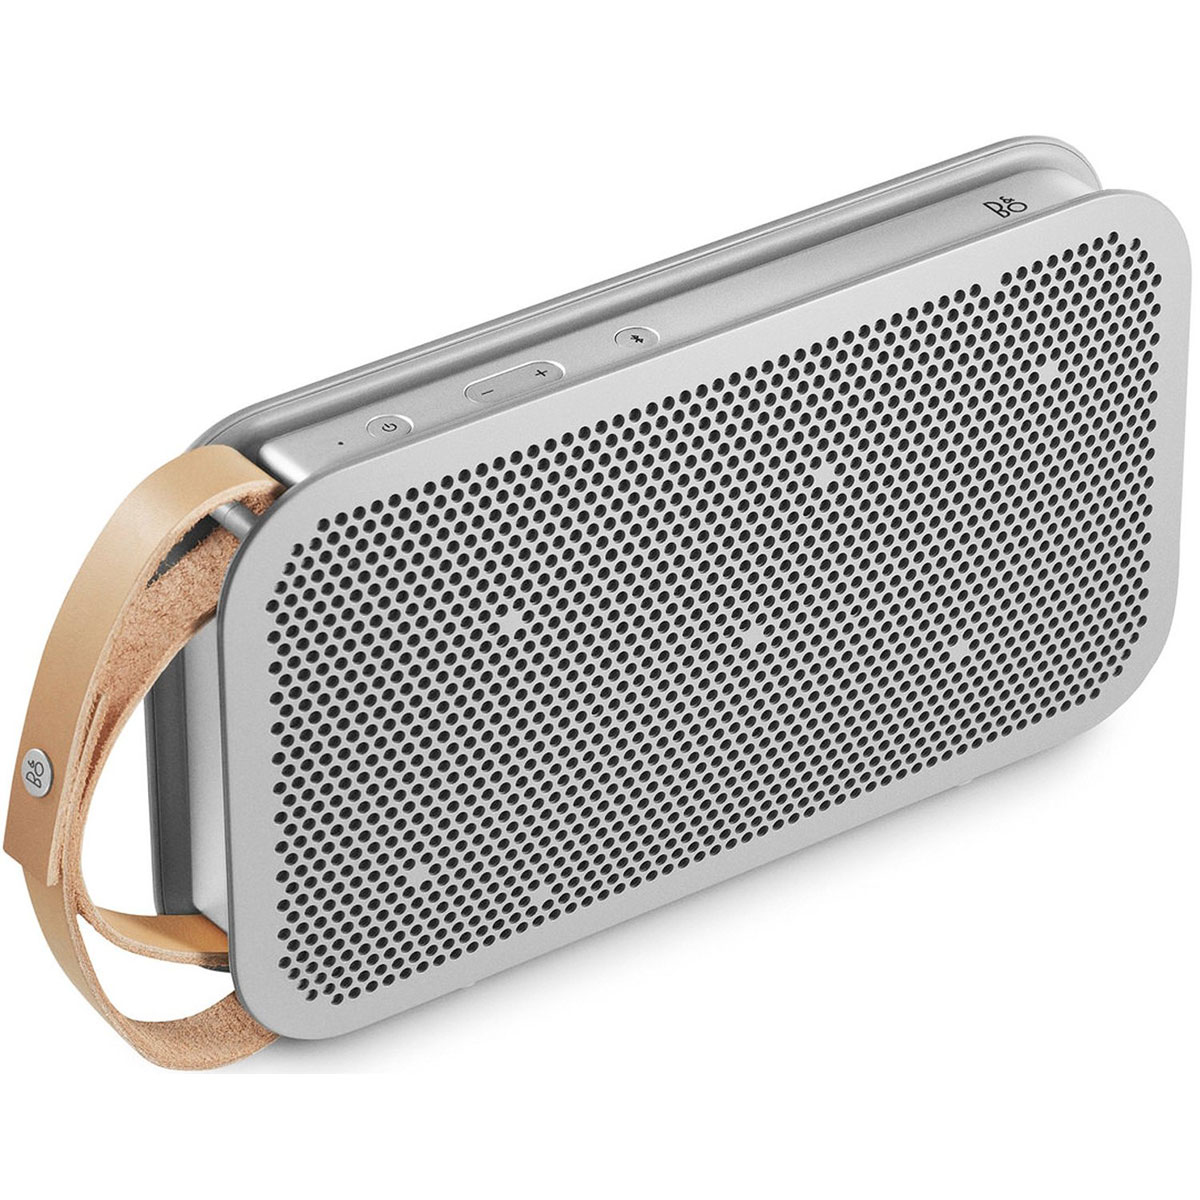 Joystick Bluetooth Seisa B O Beoplay P2 Portable Bluetooth Speaker Best Fm Bluetooth Transmitter For Older Cars Km19 Mag Mount Insignia Portable Bluetooth Speaker Ns Cspbt03: B&O Play Beoplay A2 Sable Lunaire